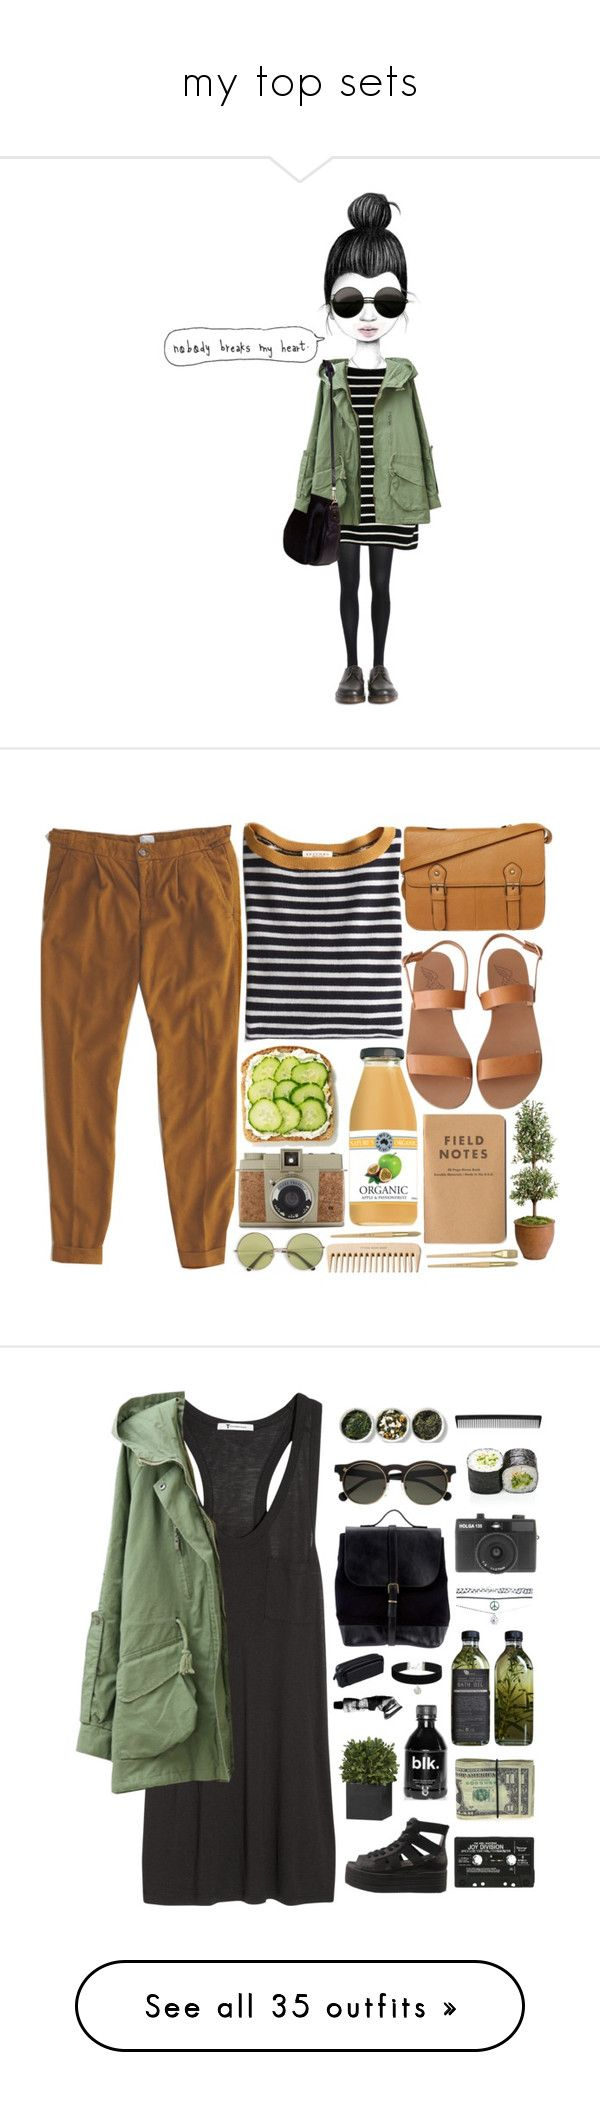 """my top sets"" by amy-lopezx ❤ liked on Polyvore featuring Bardot, Dr. Martens, GE, Nomadic, Pomandère, Demylee, even&odd, Ancient Greek Sandals, Lomography and Ethan Allen"